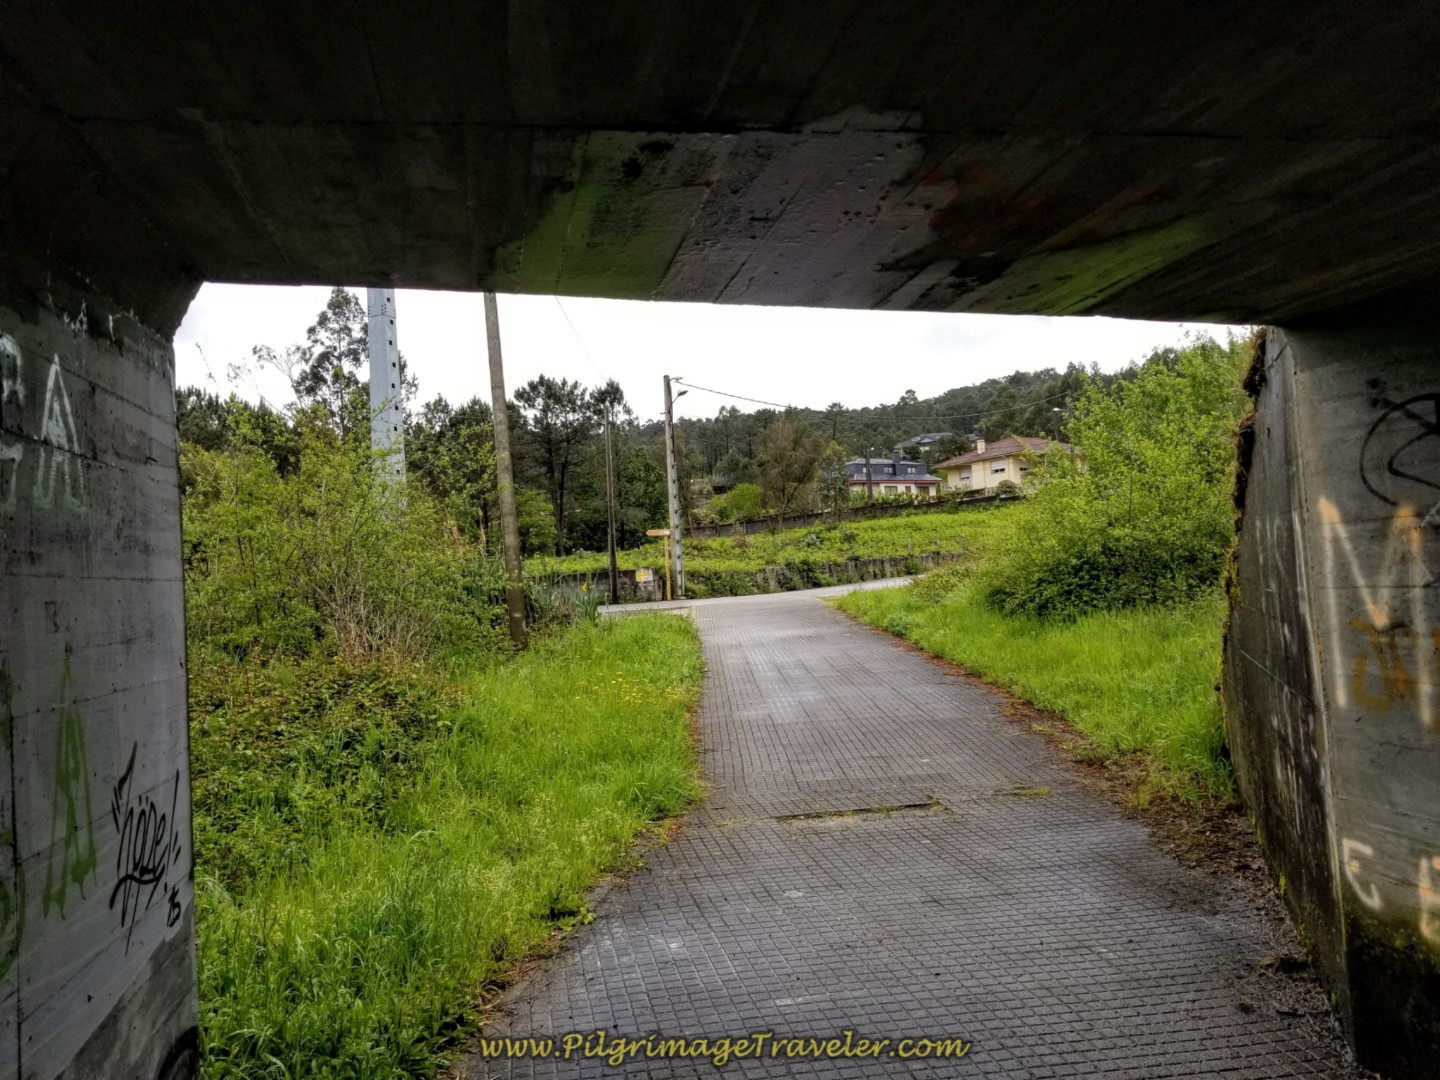 Walk Under A-52 Ramp in O Porriño on day twenty-one of the central route of the Portuguese Camino